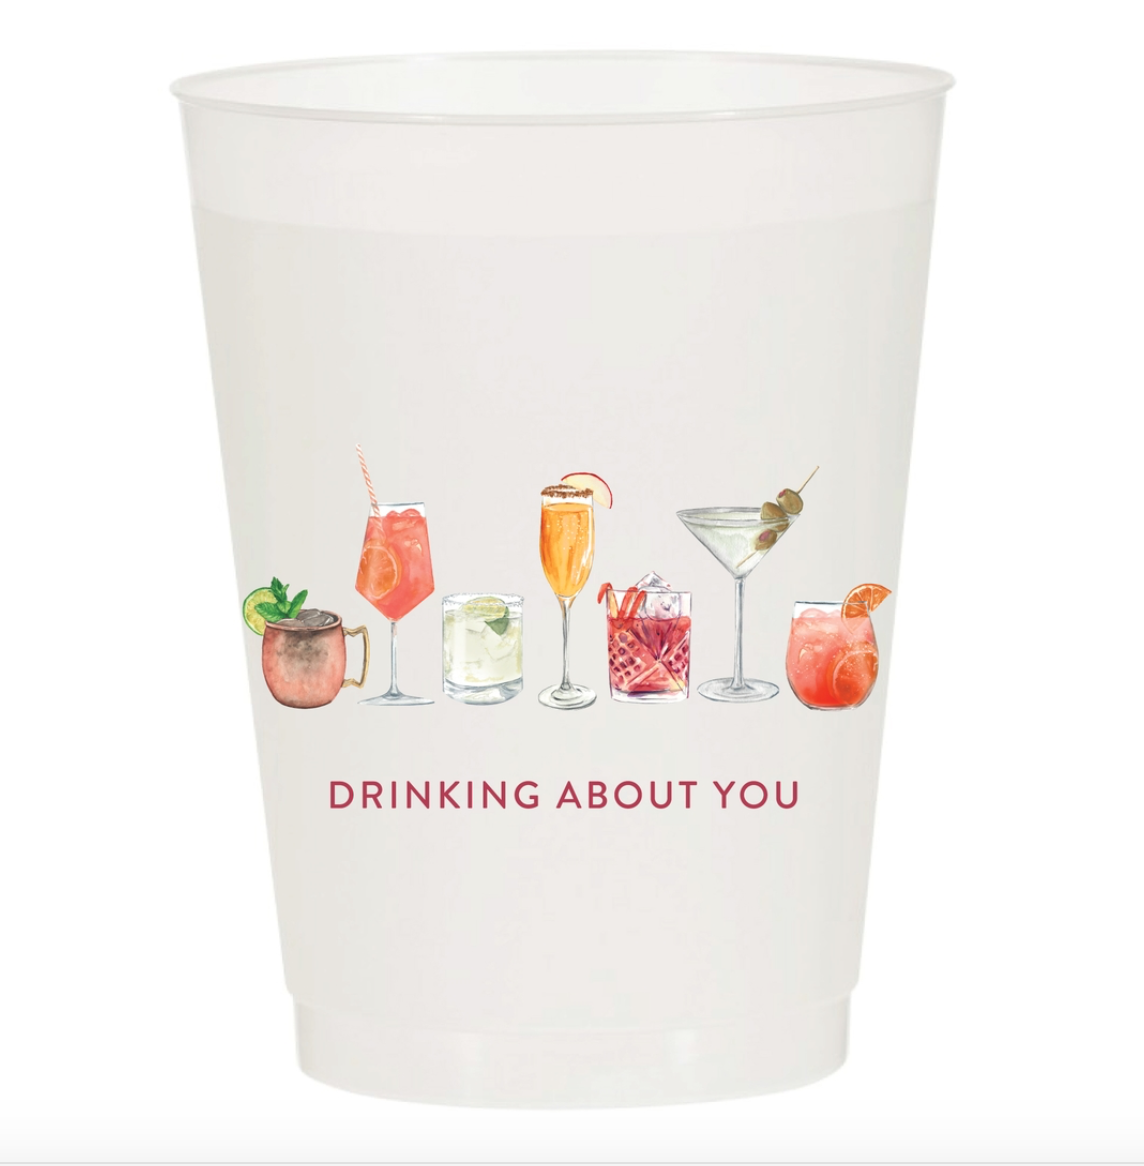 Sip Sip Hooray Drinking About You Watercolor Reusable Cups - Set of 10